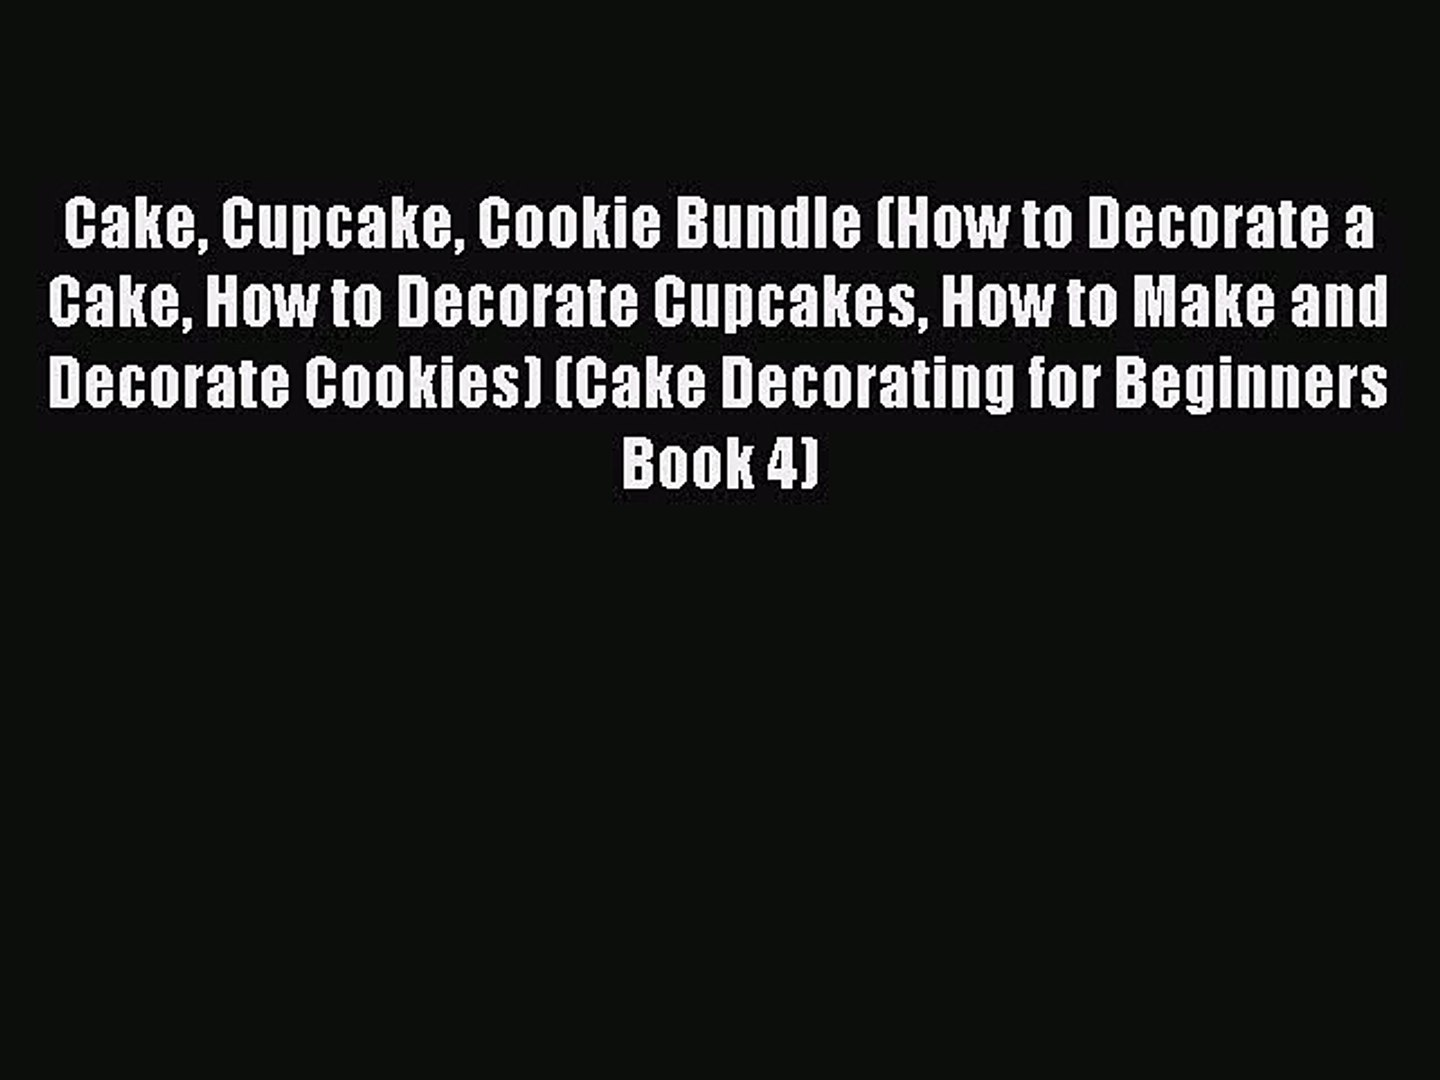 Read Cake Cupcake Cookie Bundle (How to Decorate a Cake How to Decorate Cupcakes How to Make